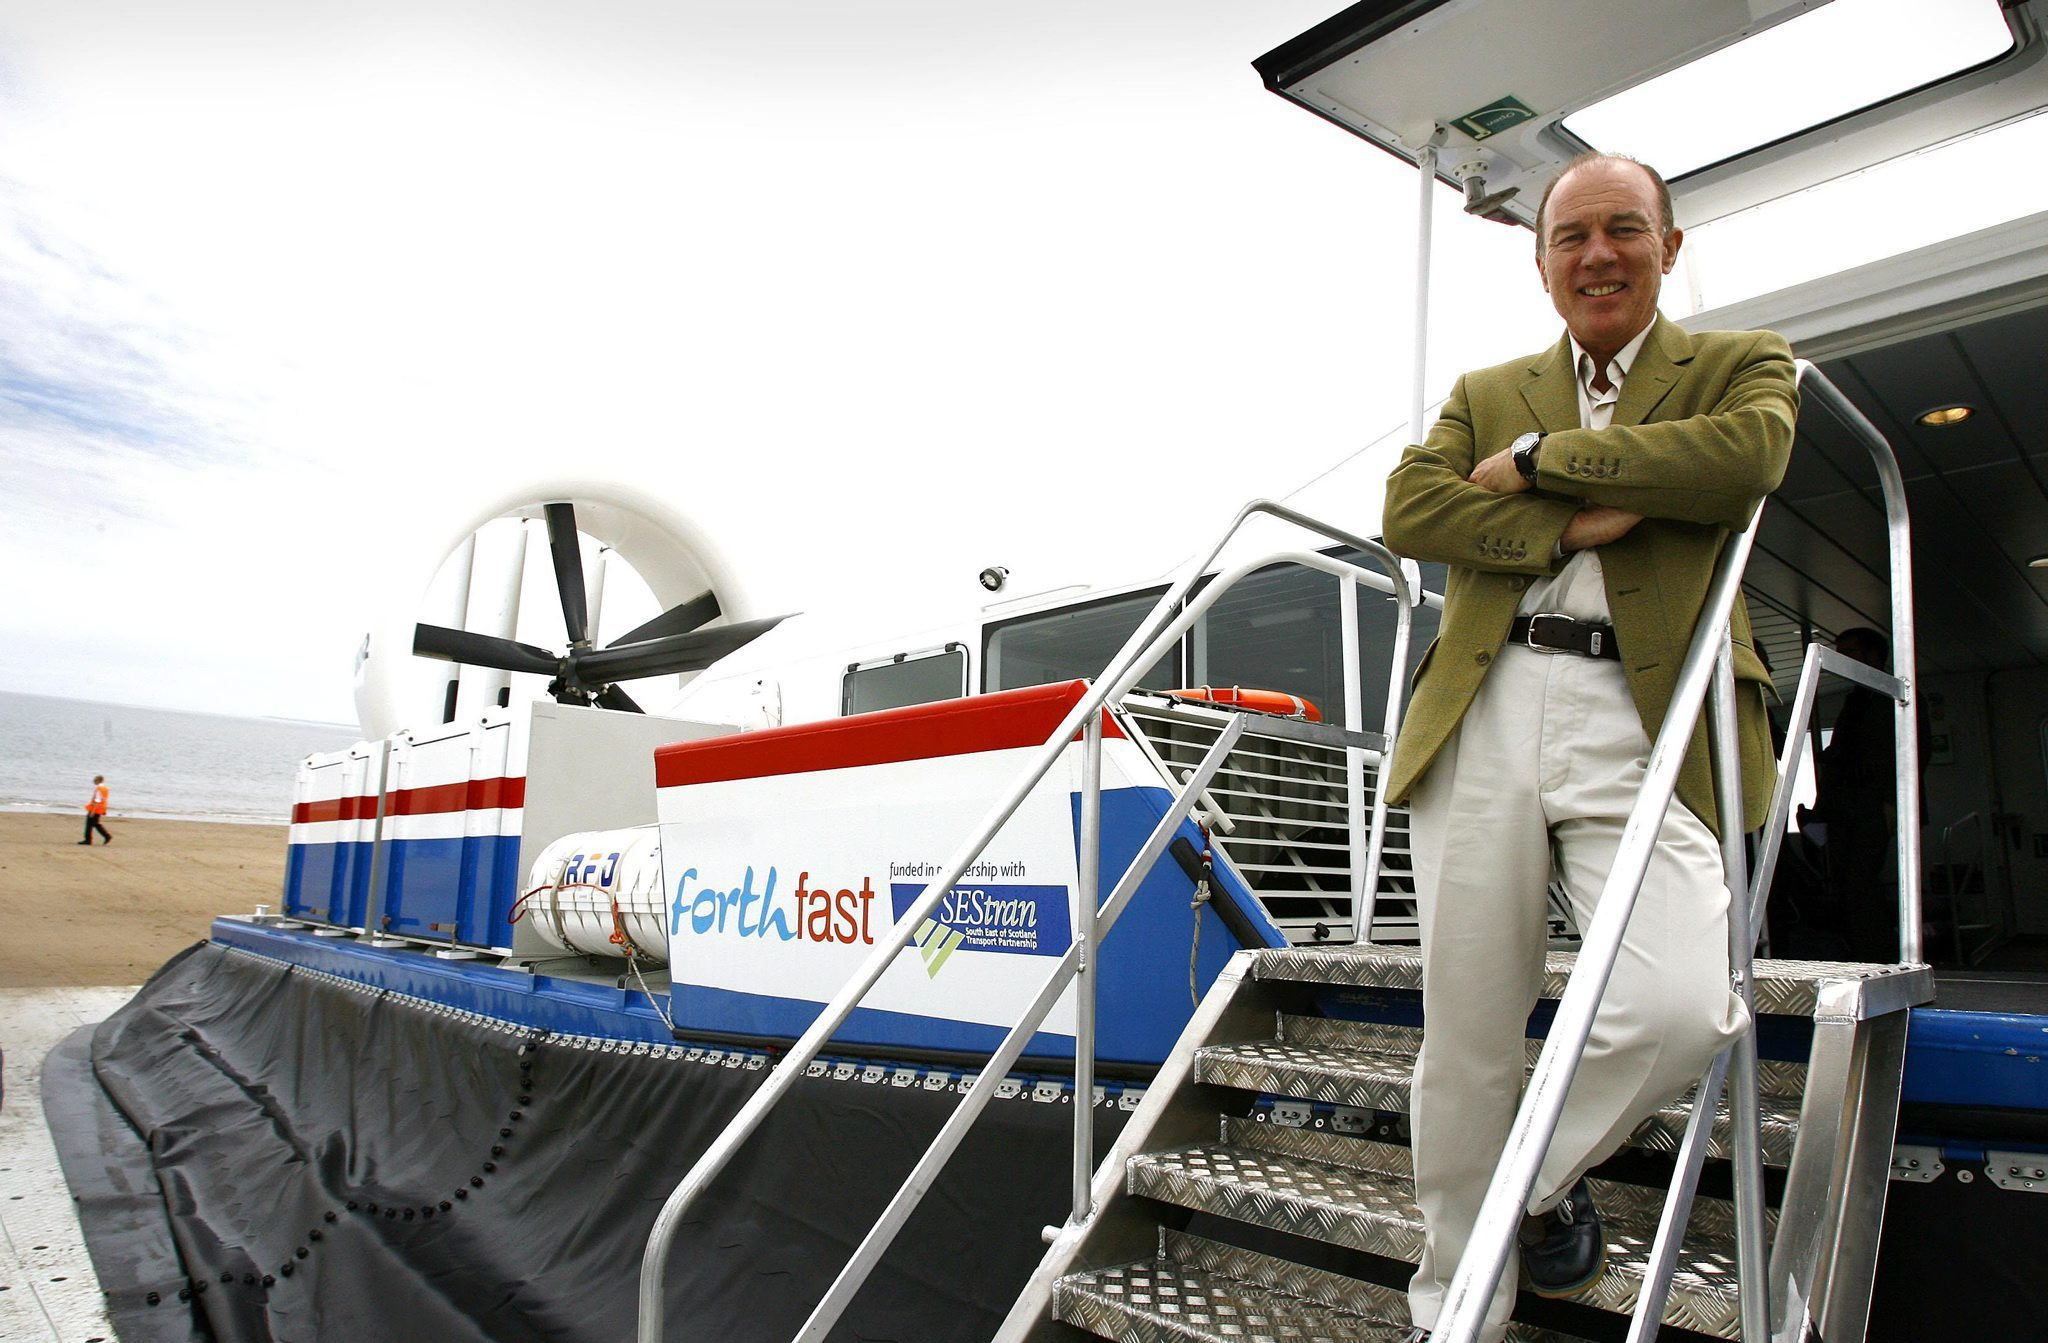 We need a network of fast ferries between Edinburgh, Lothians and Fife